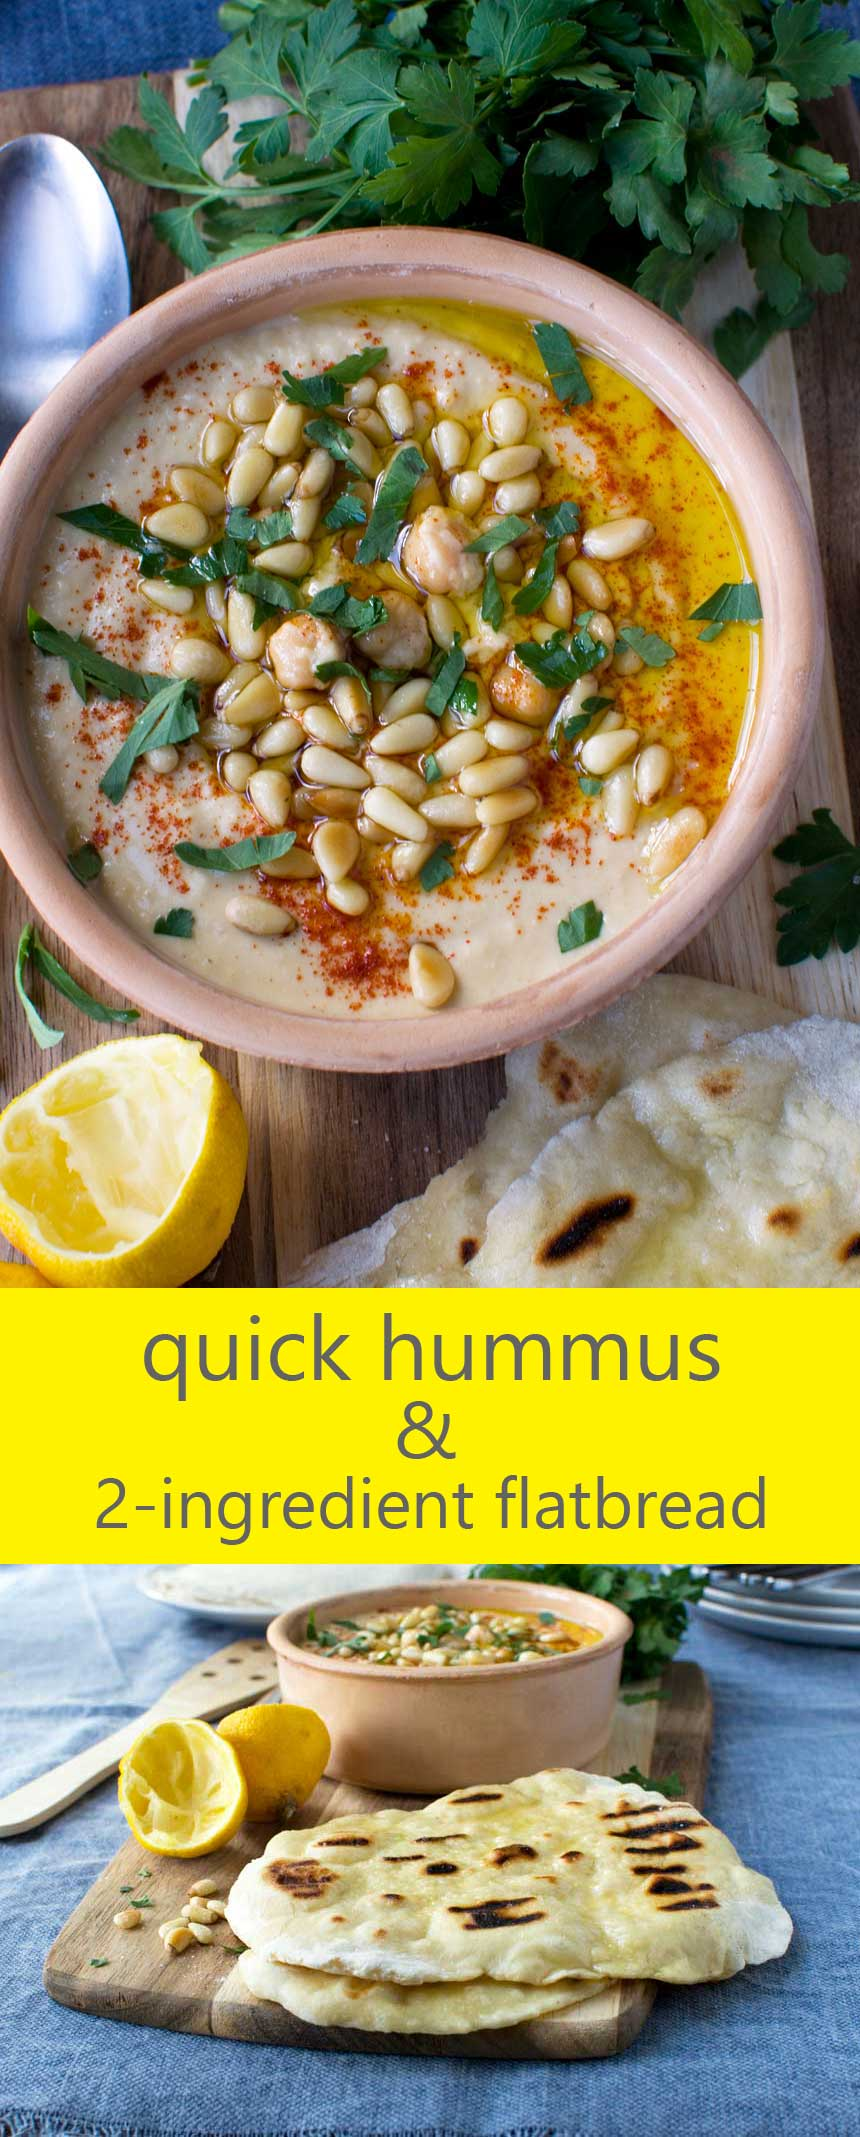 Quick hummus and 2-ingredient flatbread